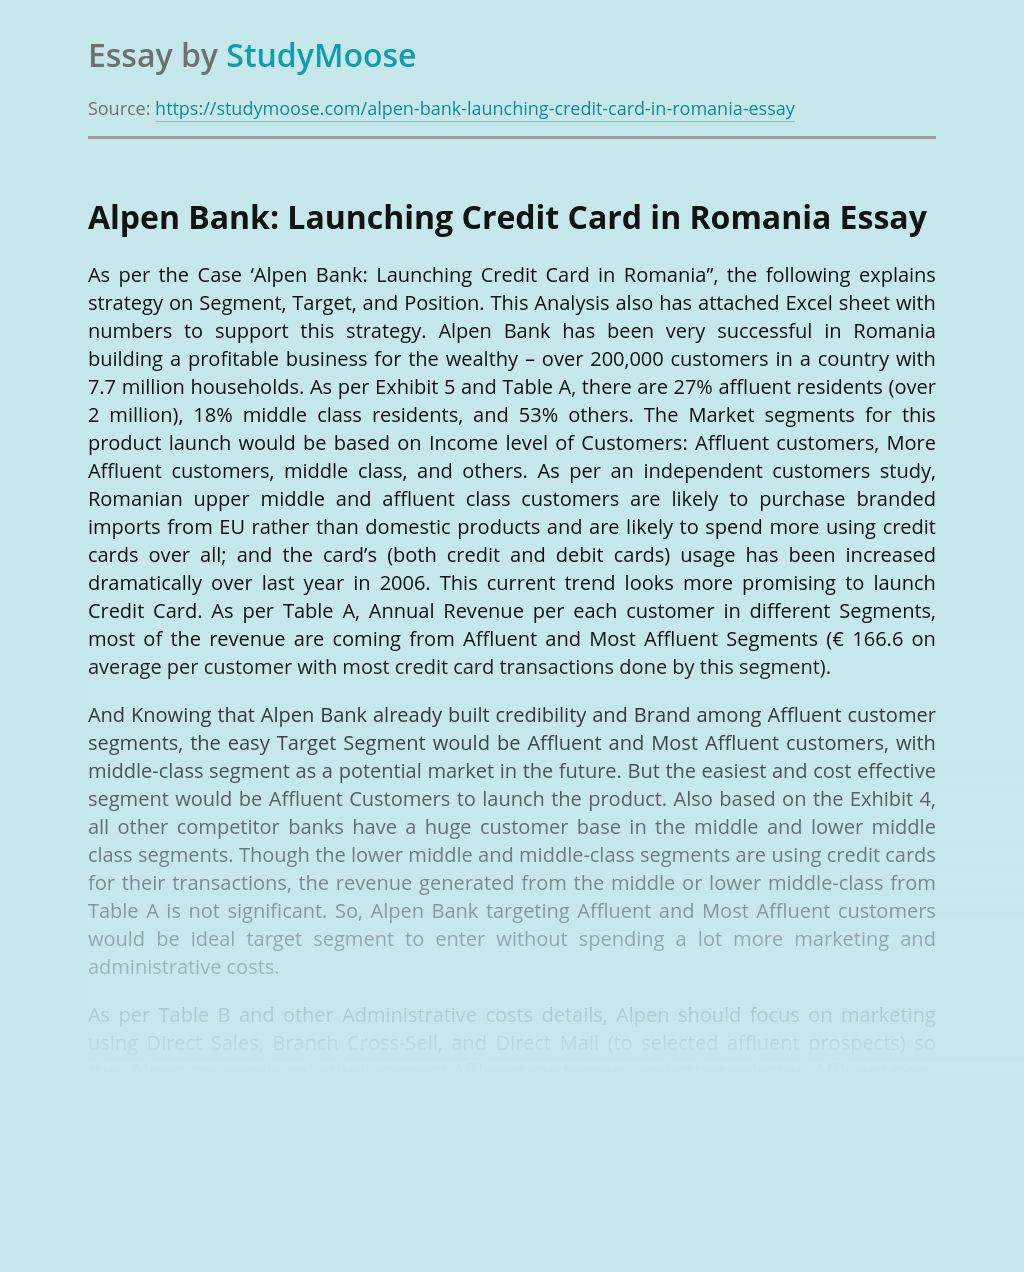 Alpen Bank: Launching Credit Card in Romania